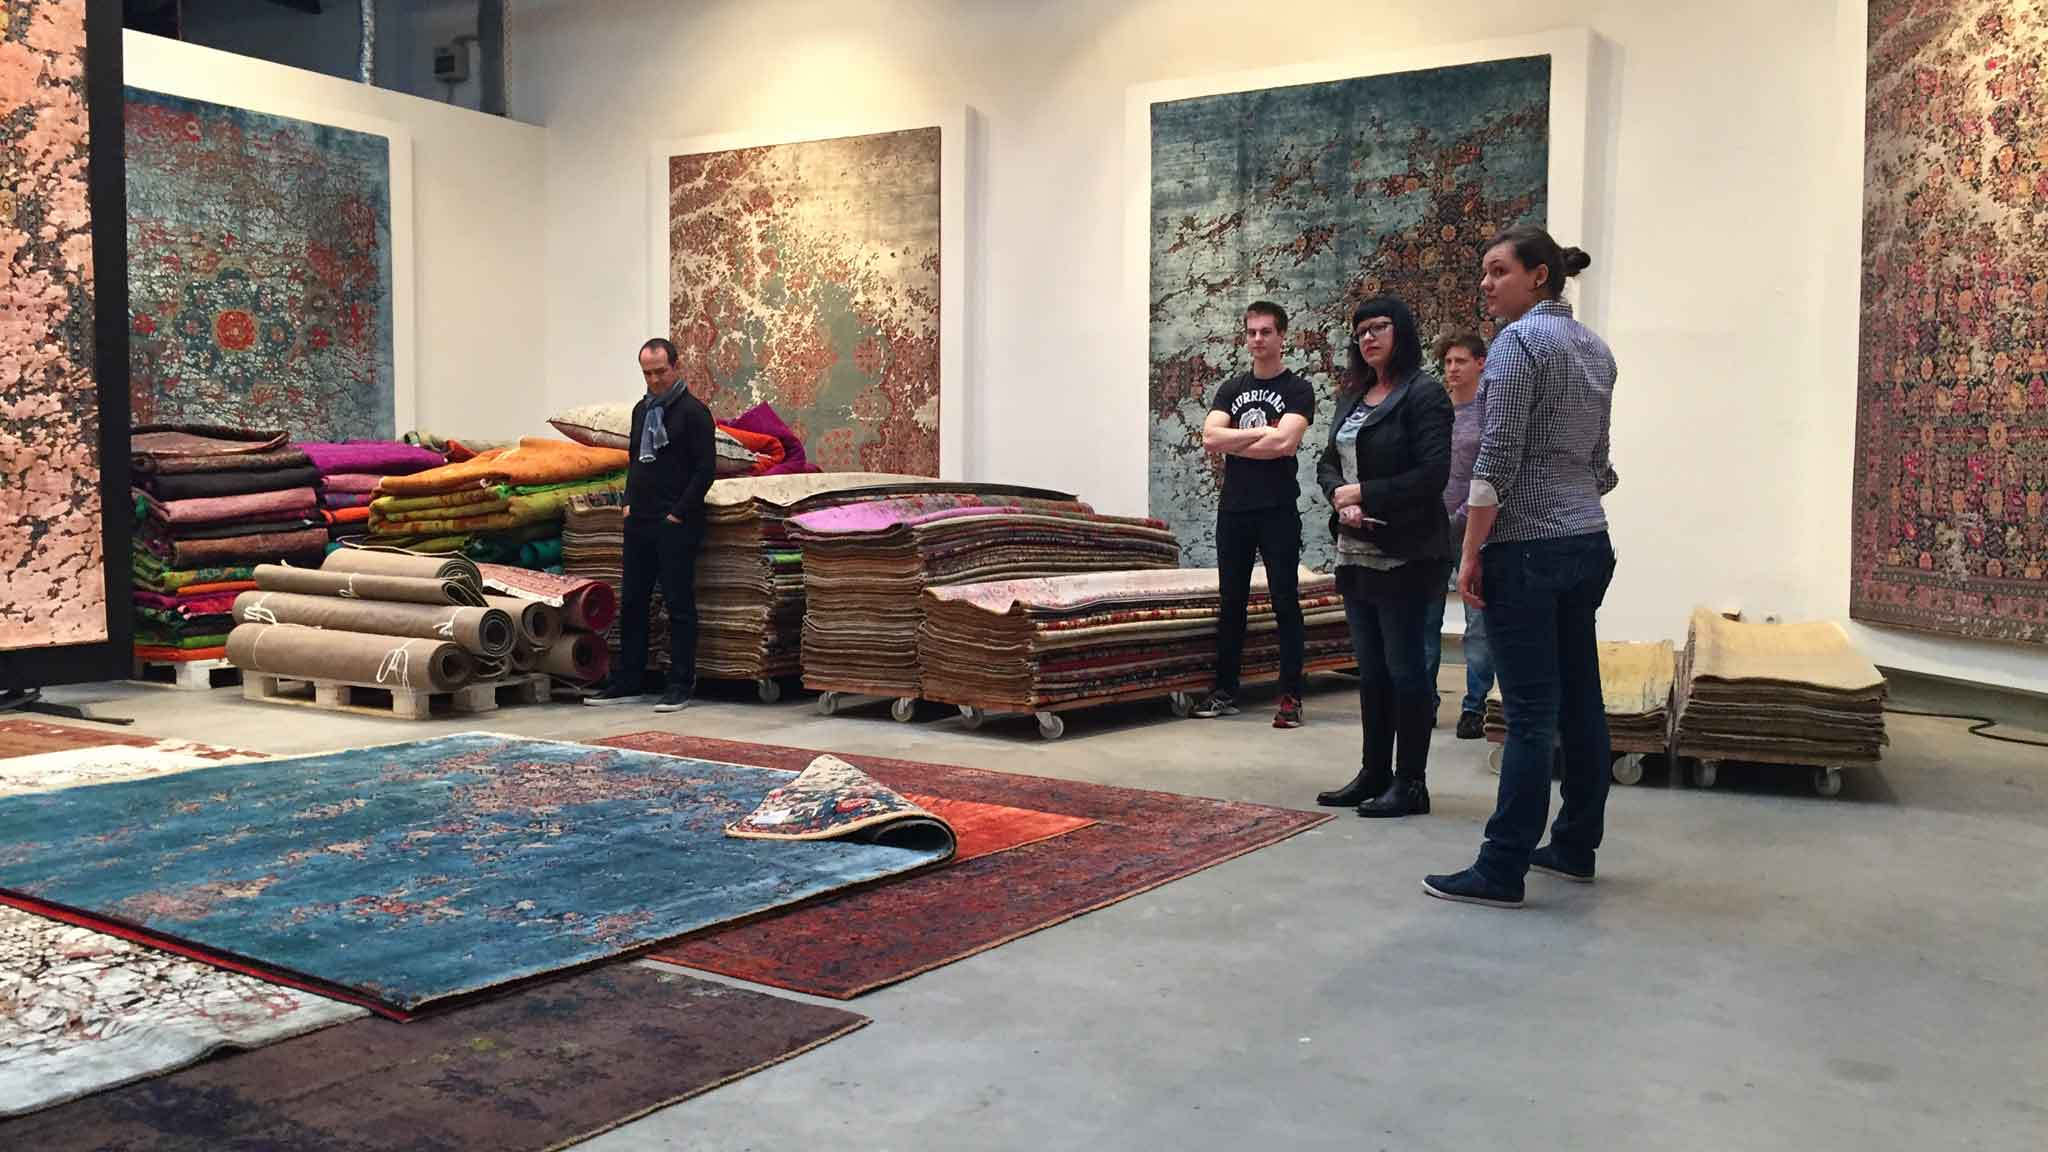 Jan Kath Showroom partners Jacques Miodownik (left), Jenni Finlay (third from left), and showroom staff listen as Jan Kath (off camera) explains elements of new carpets. | Image from The Ruggist.